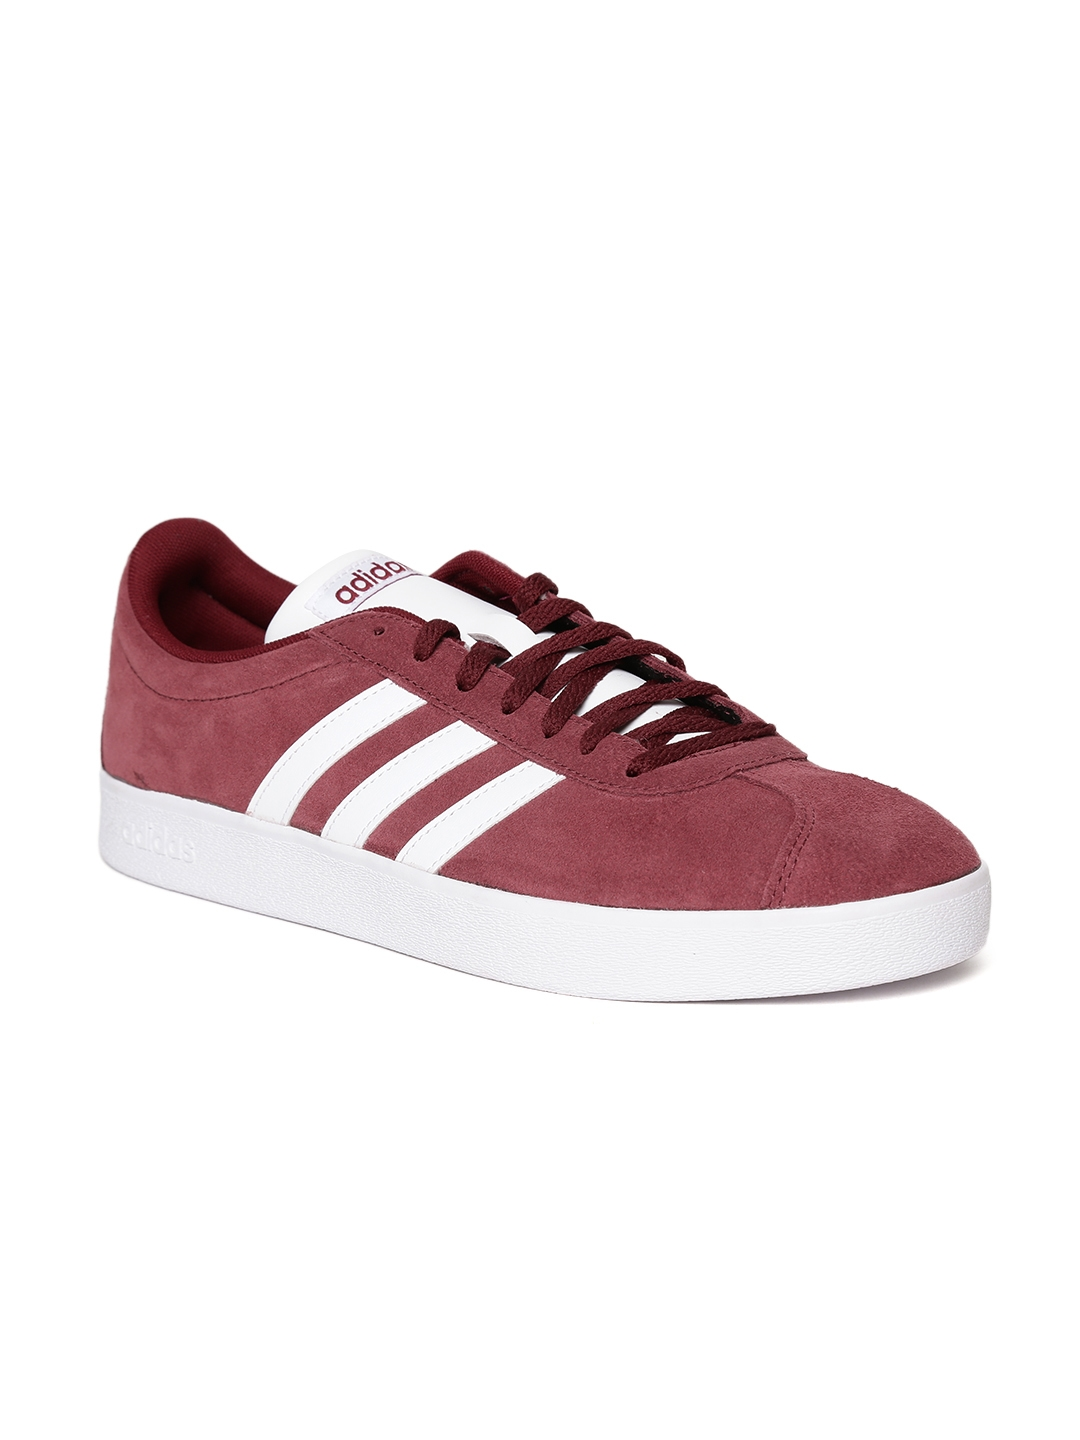 ca12d1e0831f Buy ADIDAS Men Burgundy VL COURT 2.0 Sneakers - Casual Shoes for Men ...